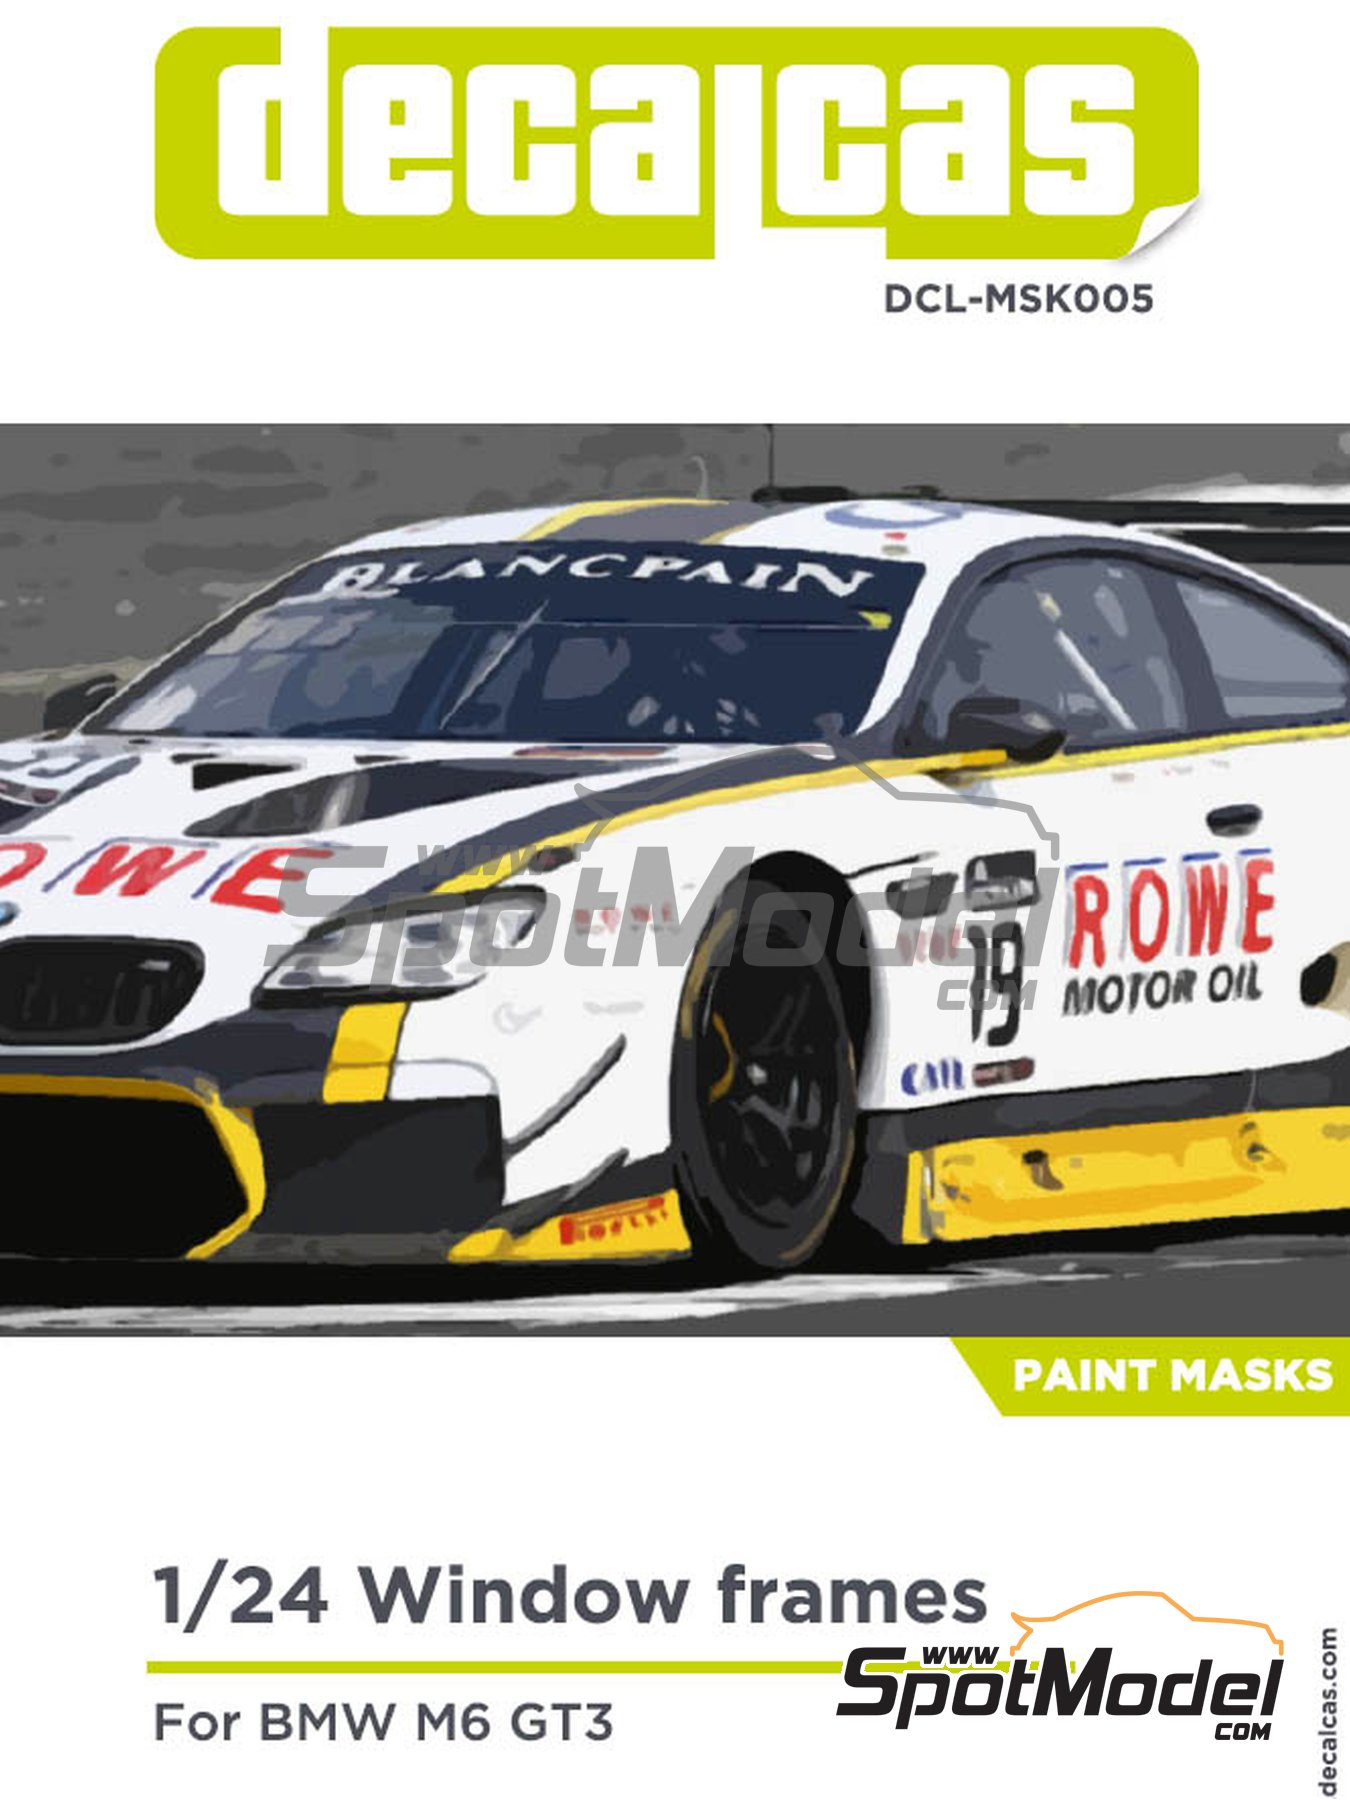 BMW M6 GT3 | Masks in 1/24 scale manufactured by Decalcas (ref. DCL-MSK005) image